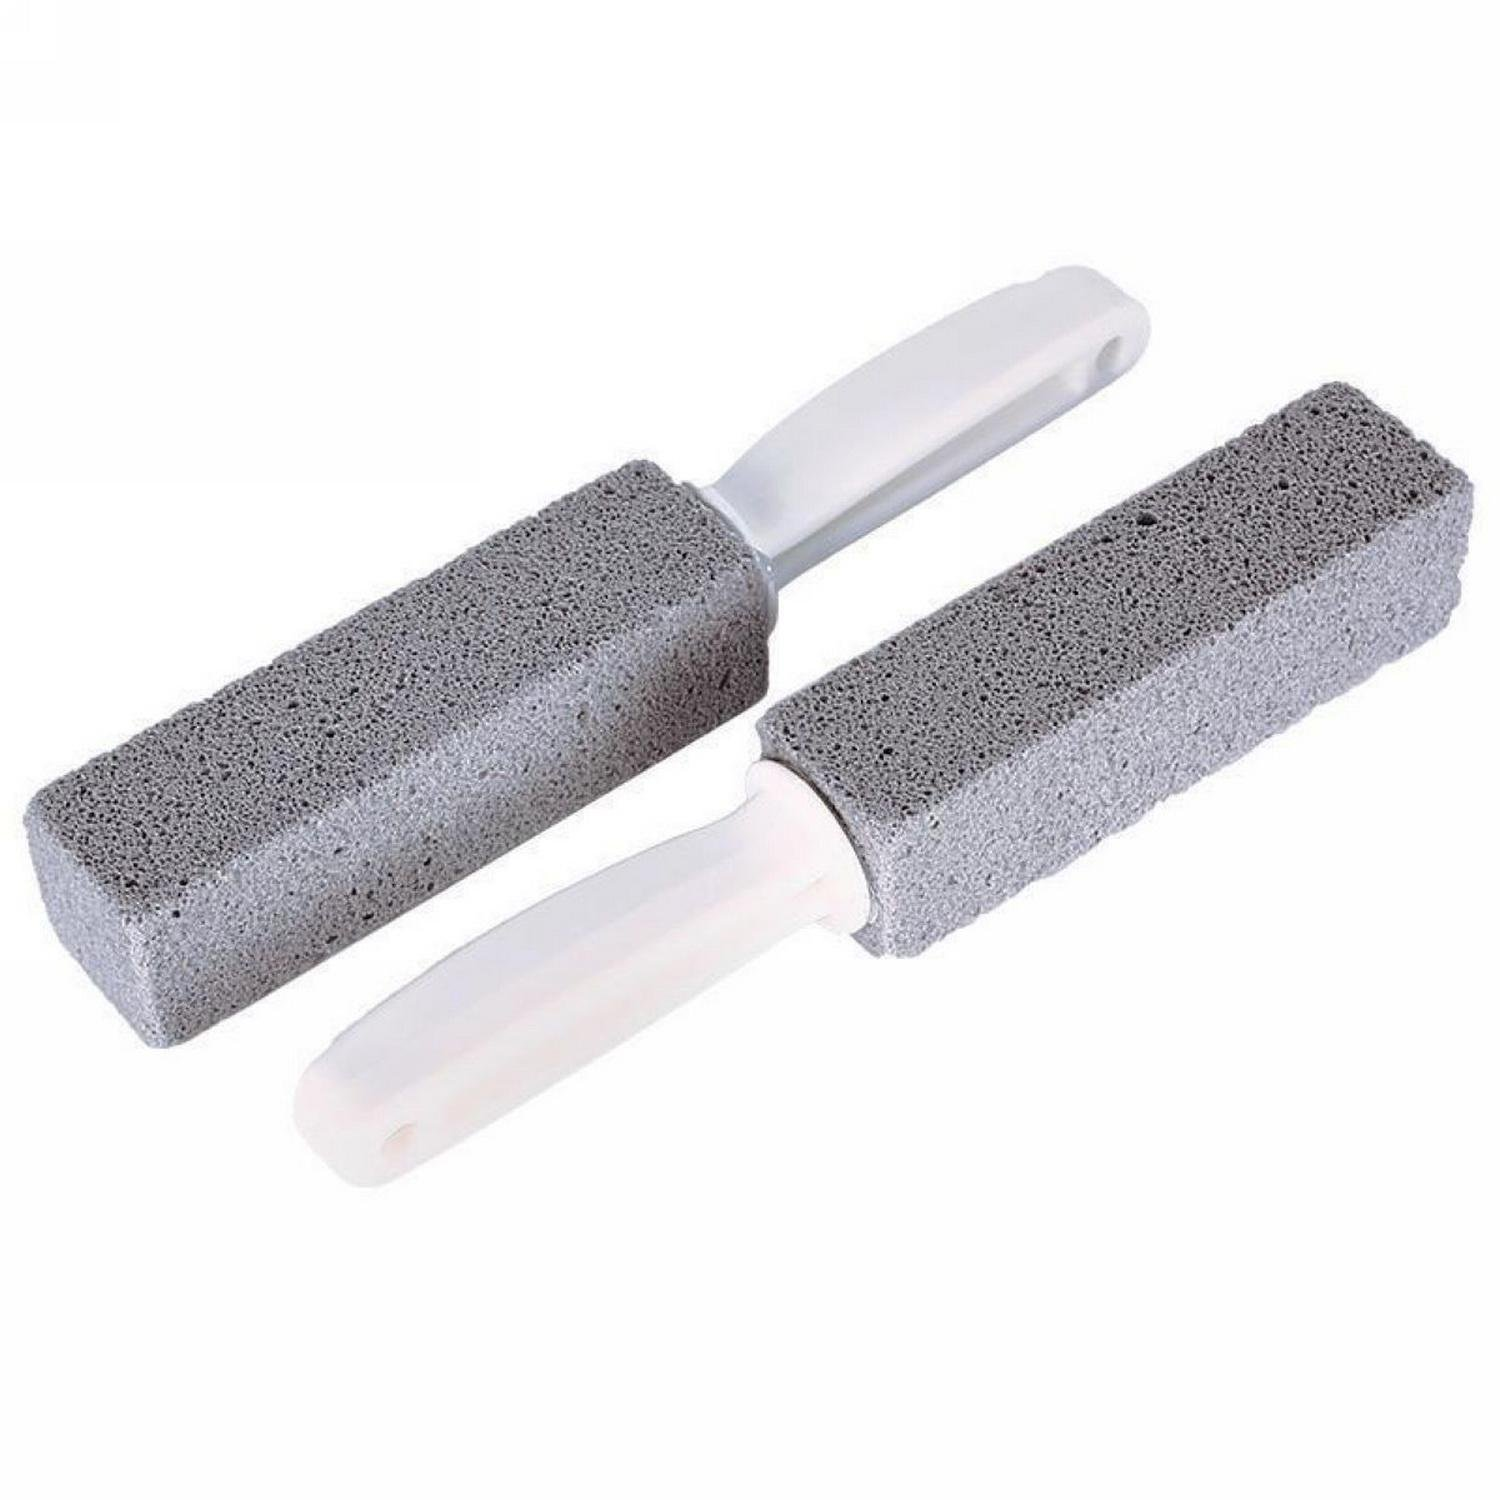 Youcoco 2pcs Water Toilet Bowl Natural Pumice Stone Cleaner Brush Wand Cleaning Tool